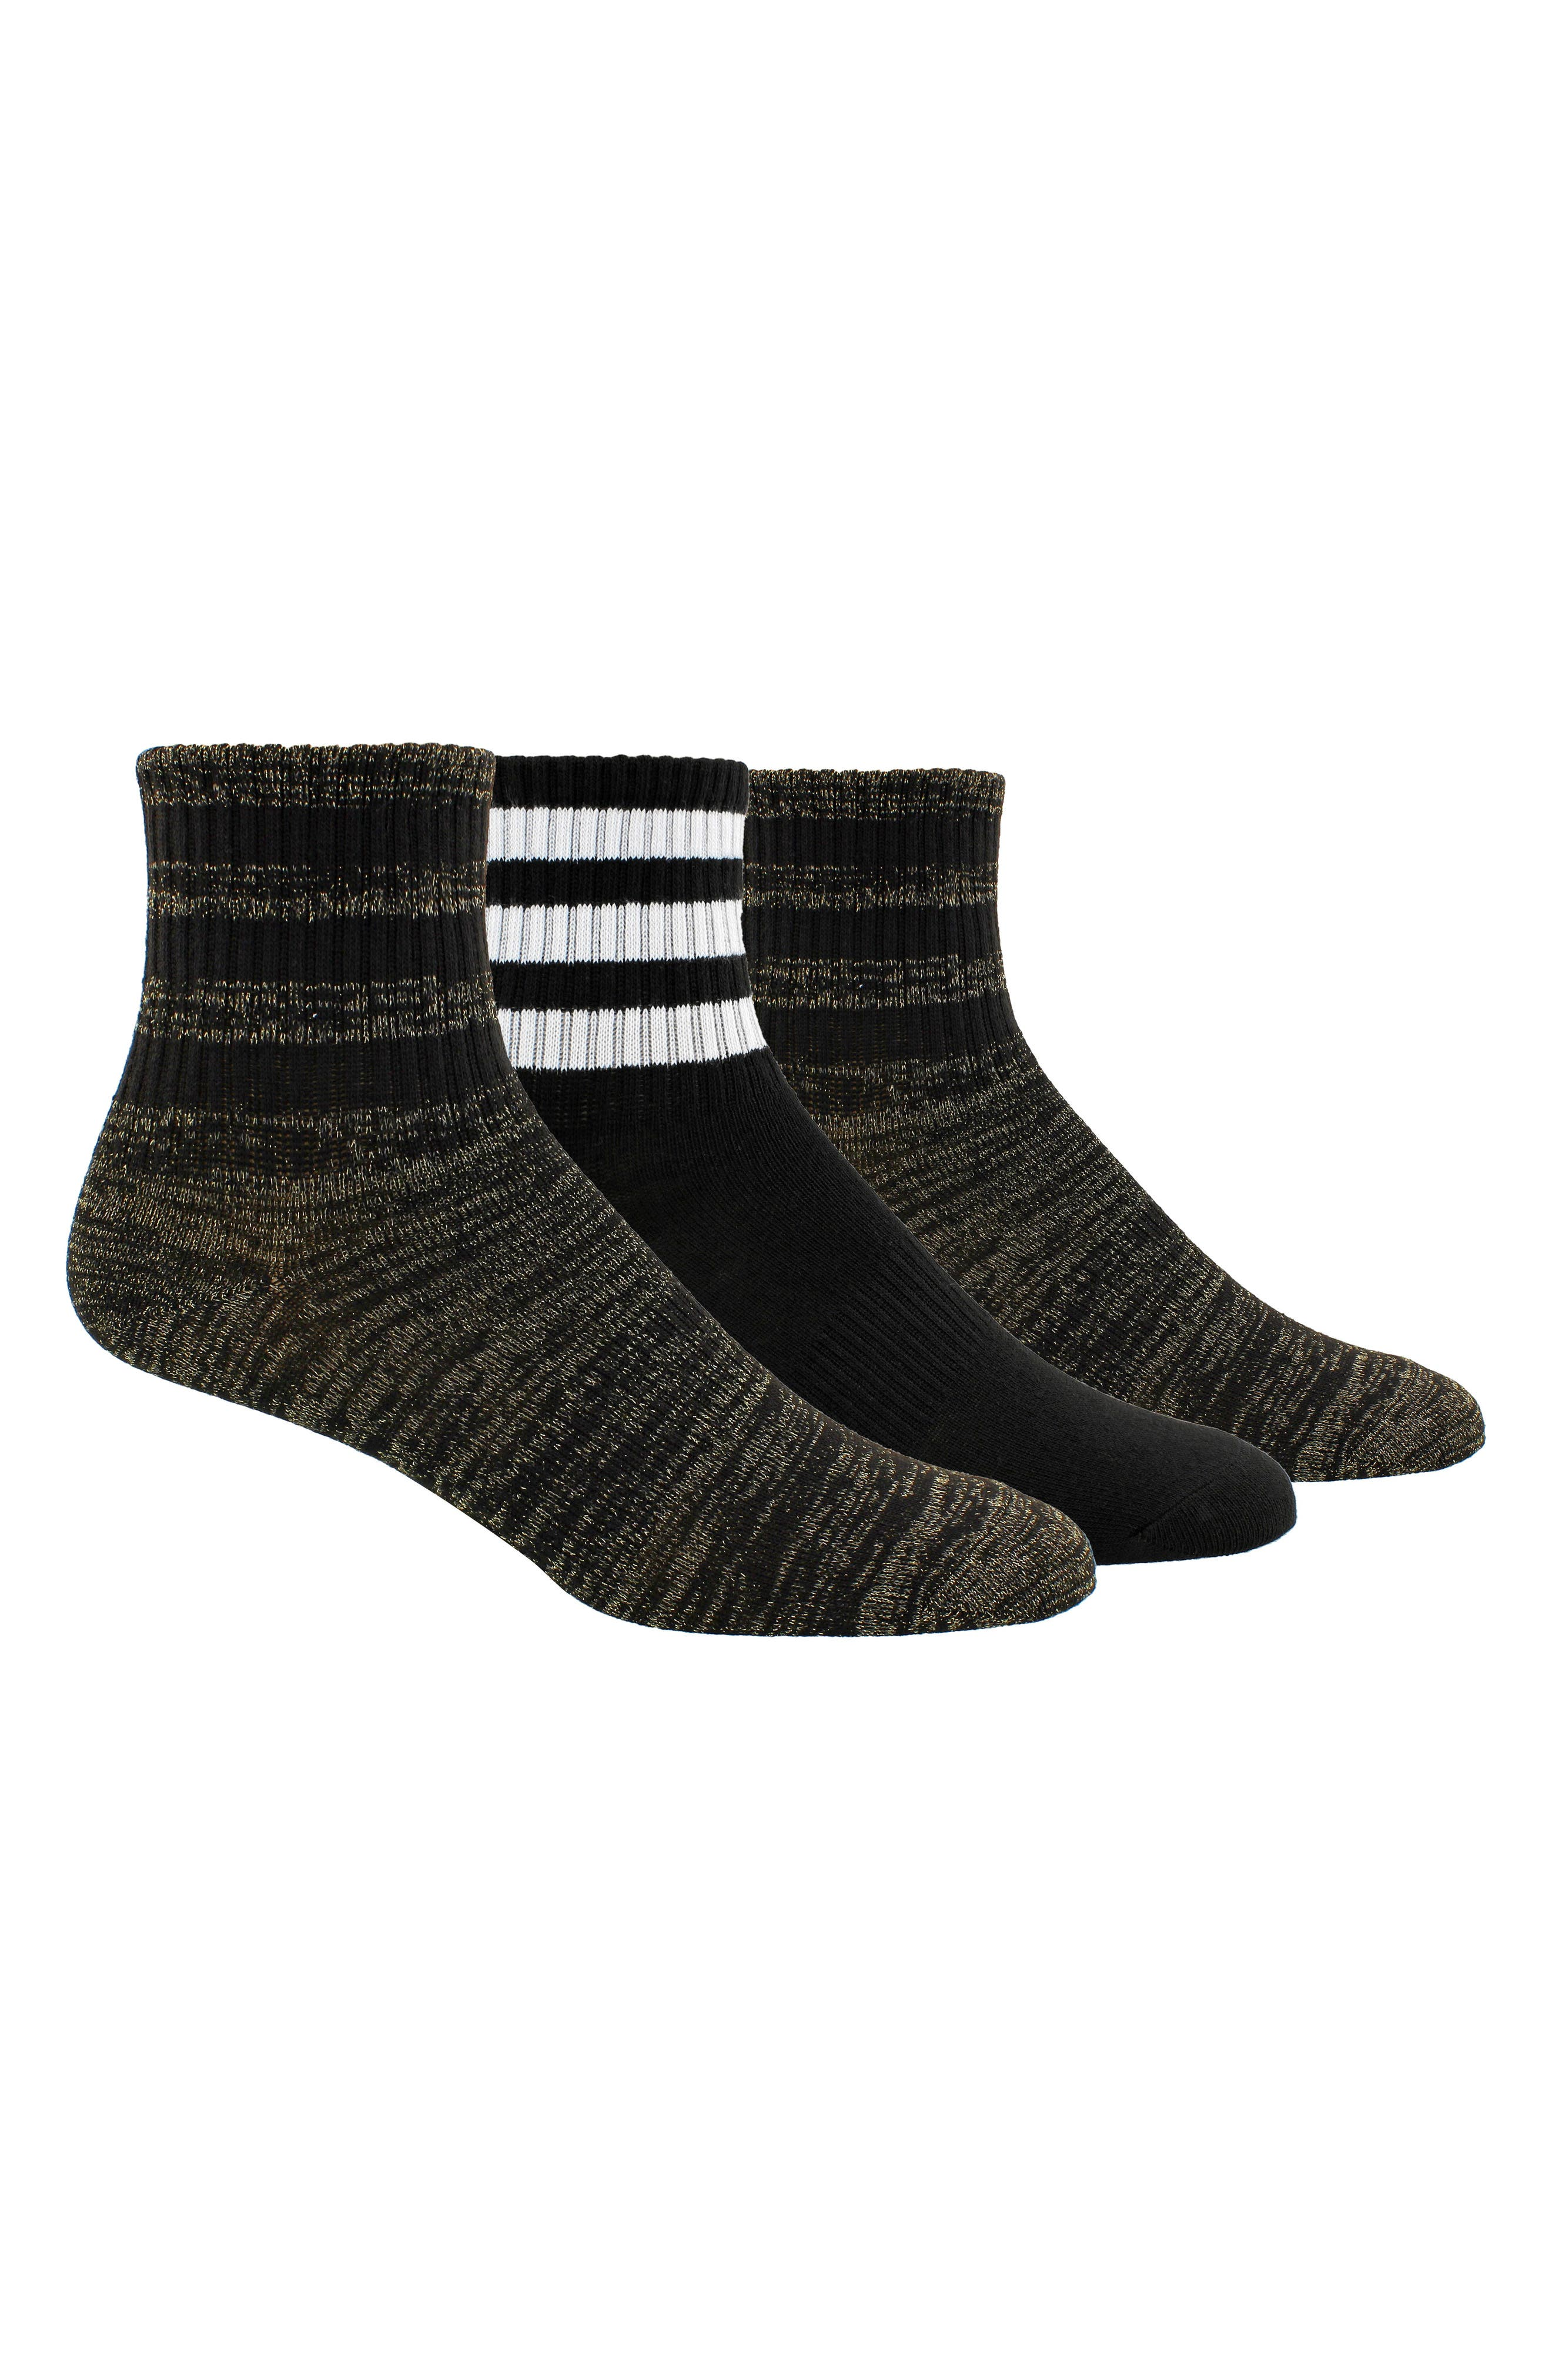 Alternate Image 1 Selected - adidas 3-Stripes 3-Pack Ankle Socks